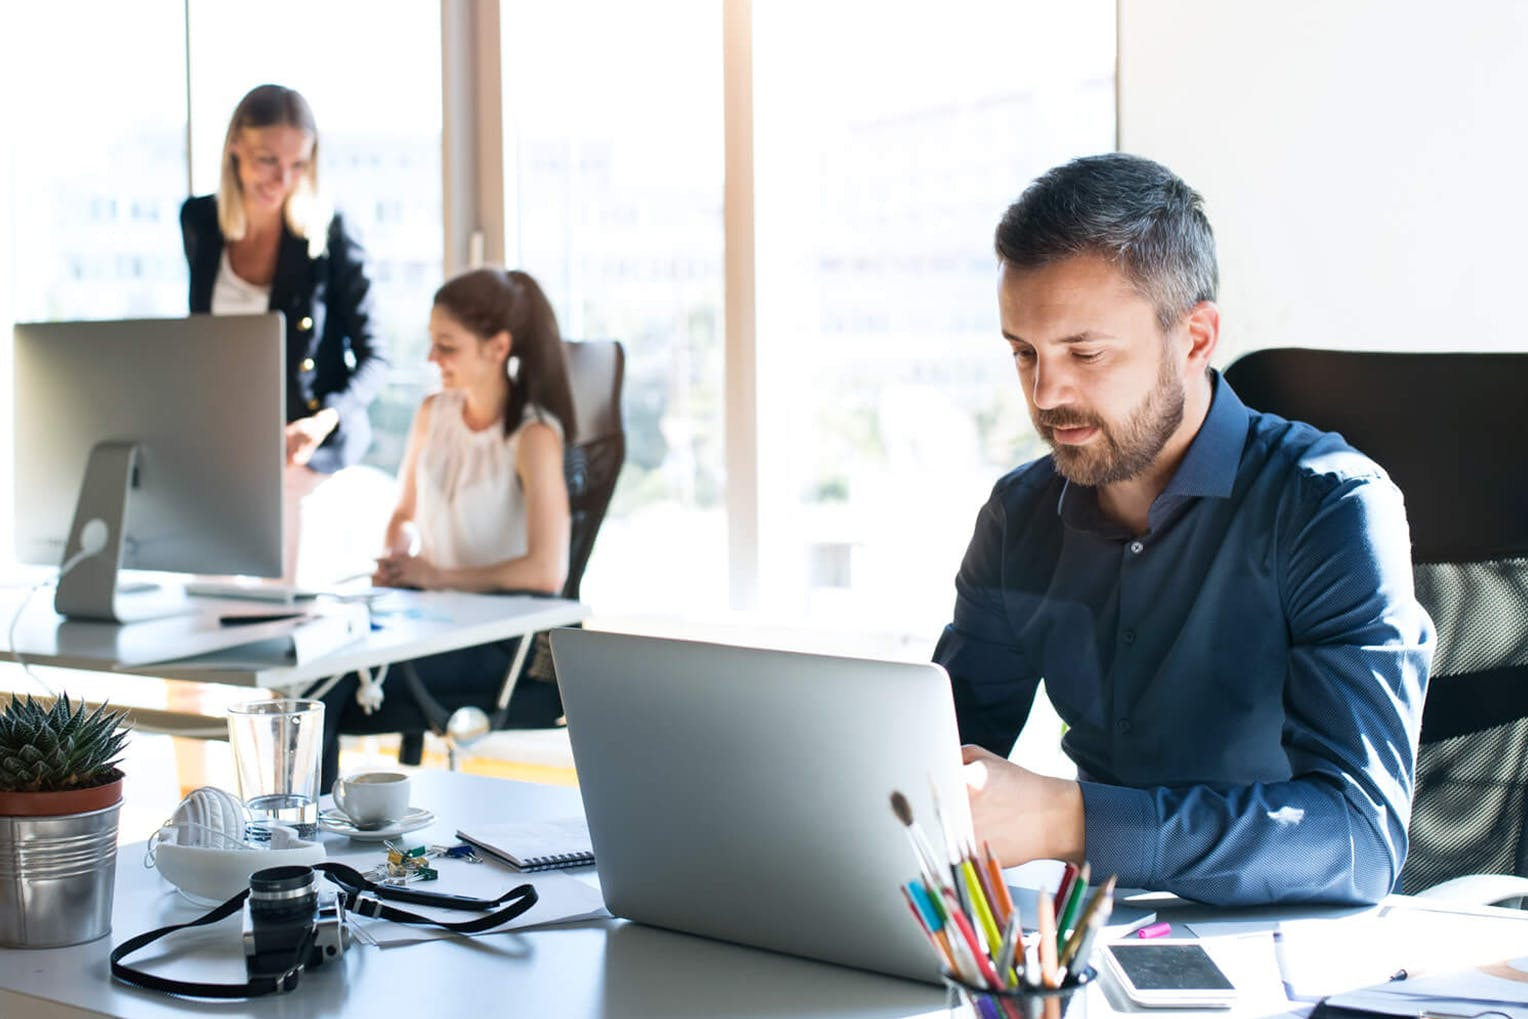 Man working at workstation with female coworkers talking in the background